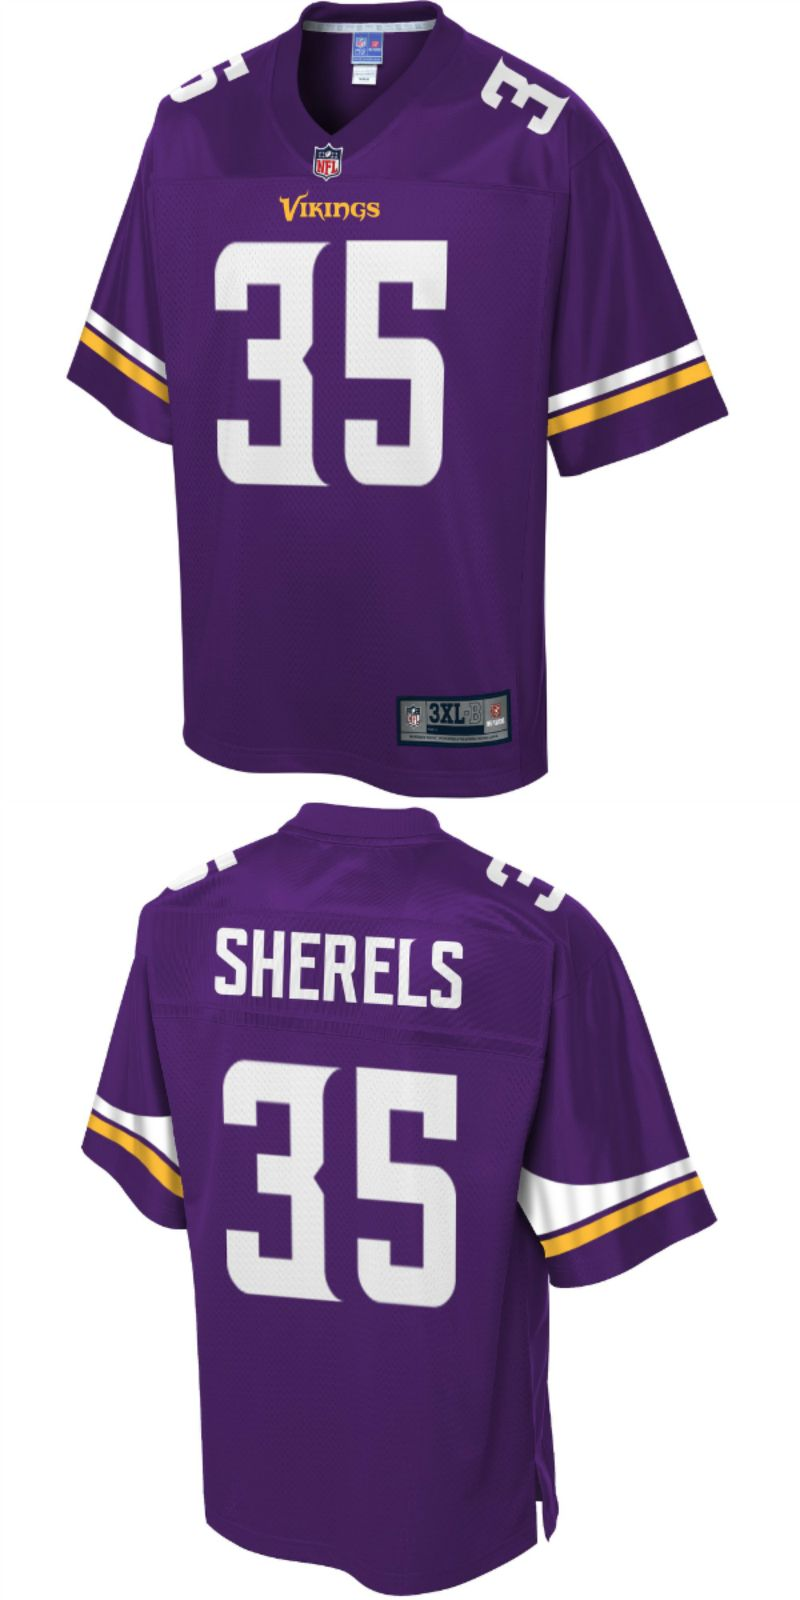 new styles f52c2 d6369 UP TO 70% OFF. Marcus Sherels Minnesota Vikings NFL Pro Line ...